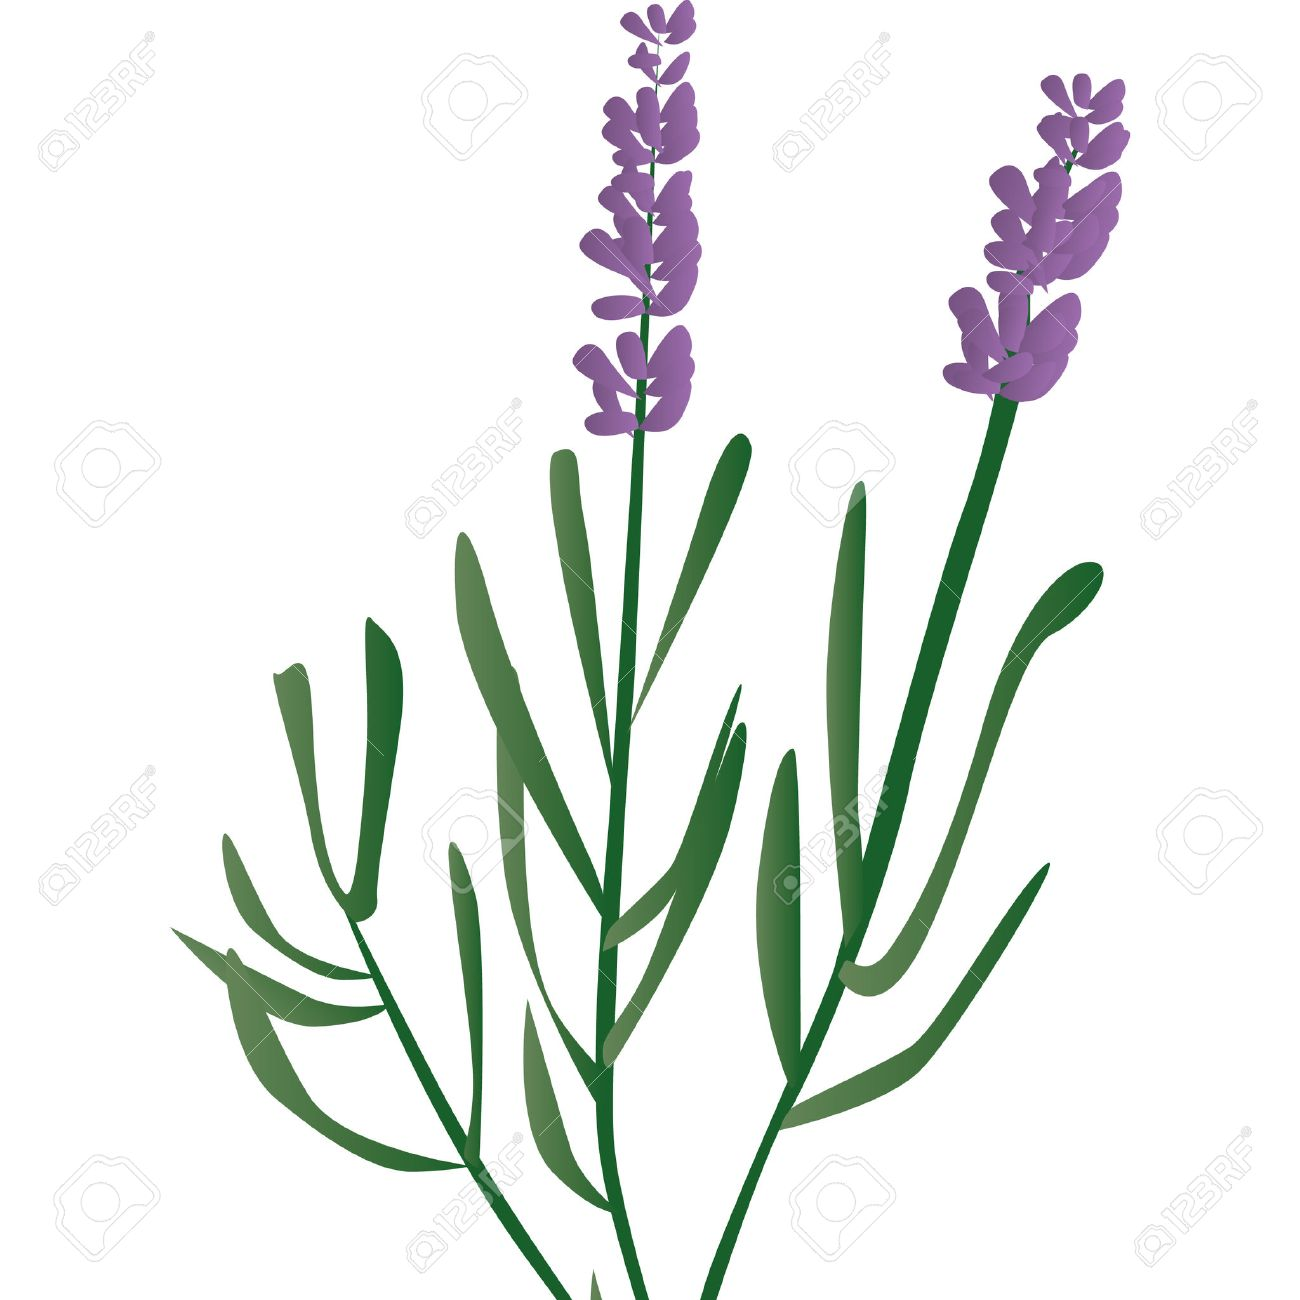 branch of lavender, violet scented beautiful plant Stock Vector - 8096517